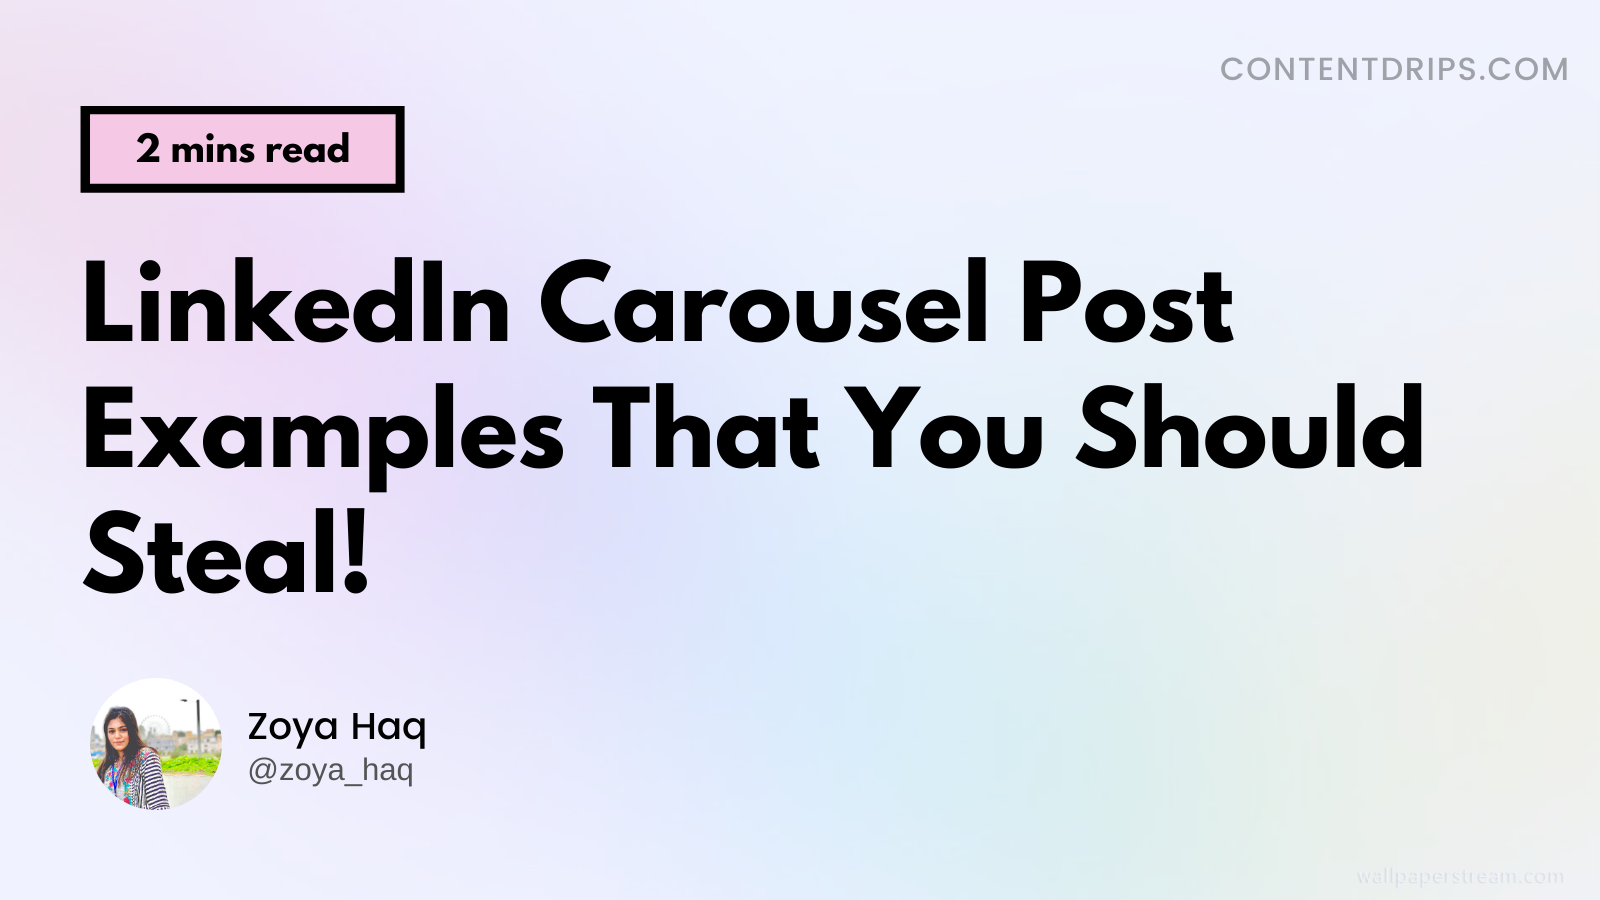 LinkedIn Carousel Post Examples That You Should Steal.